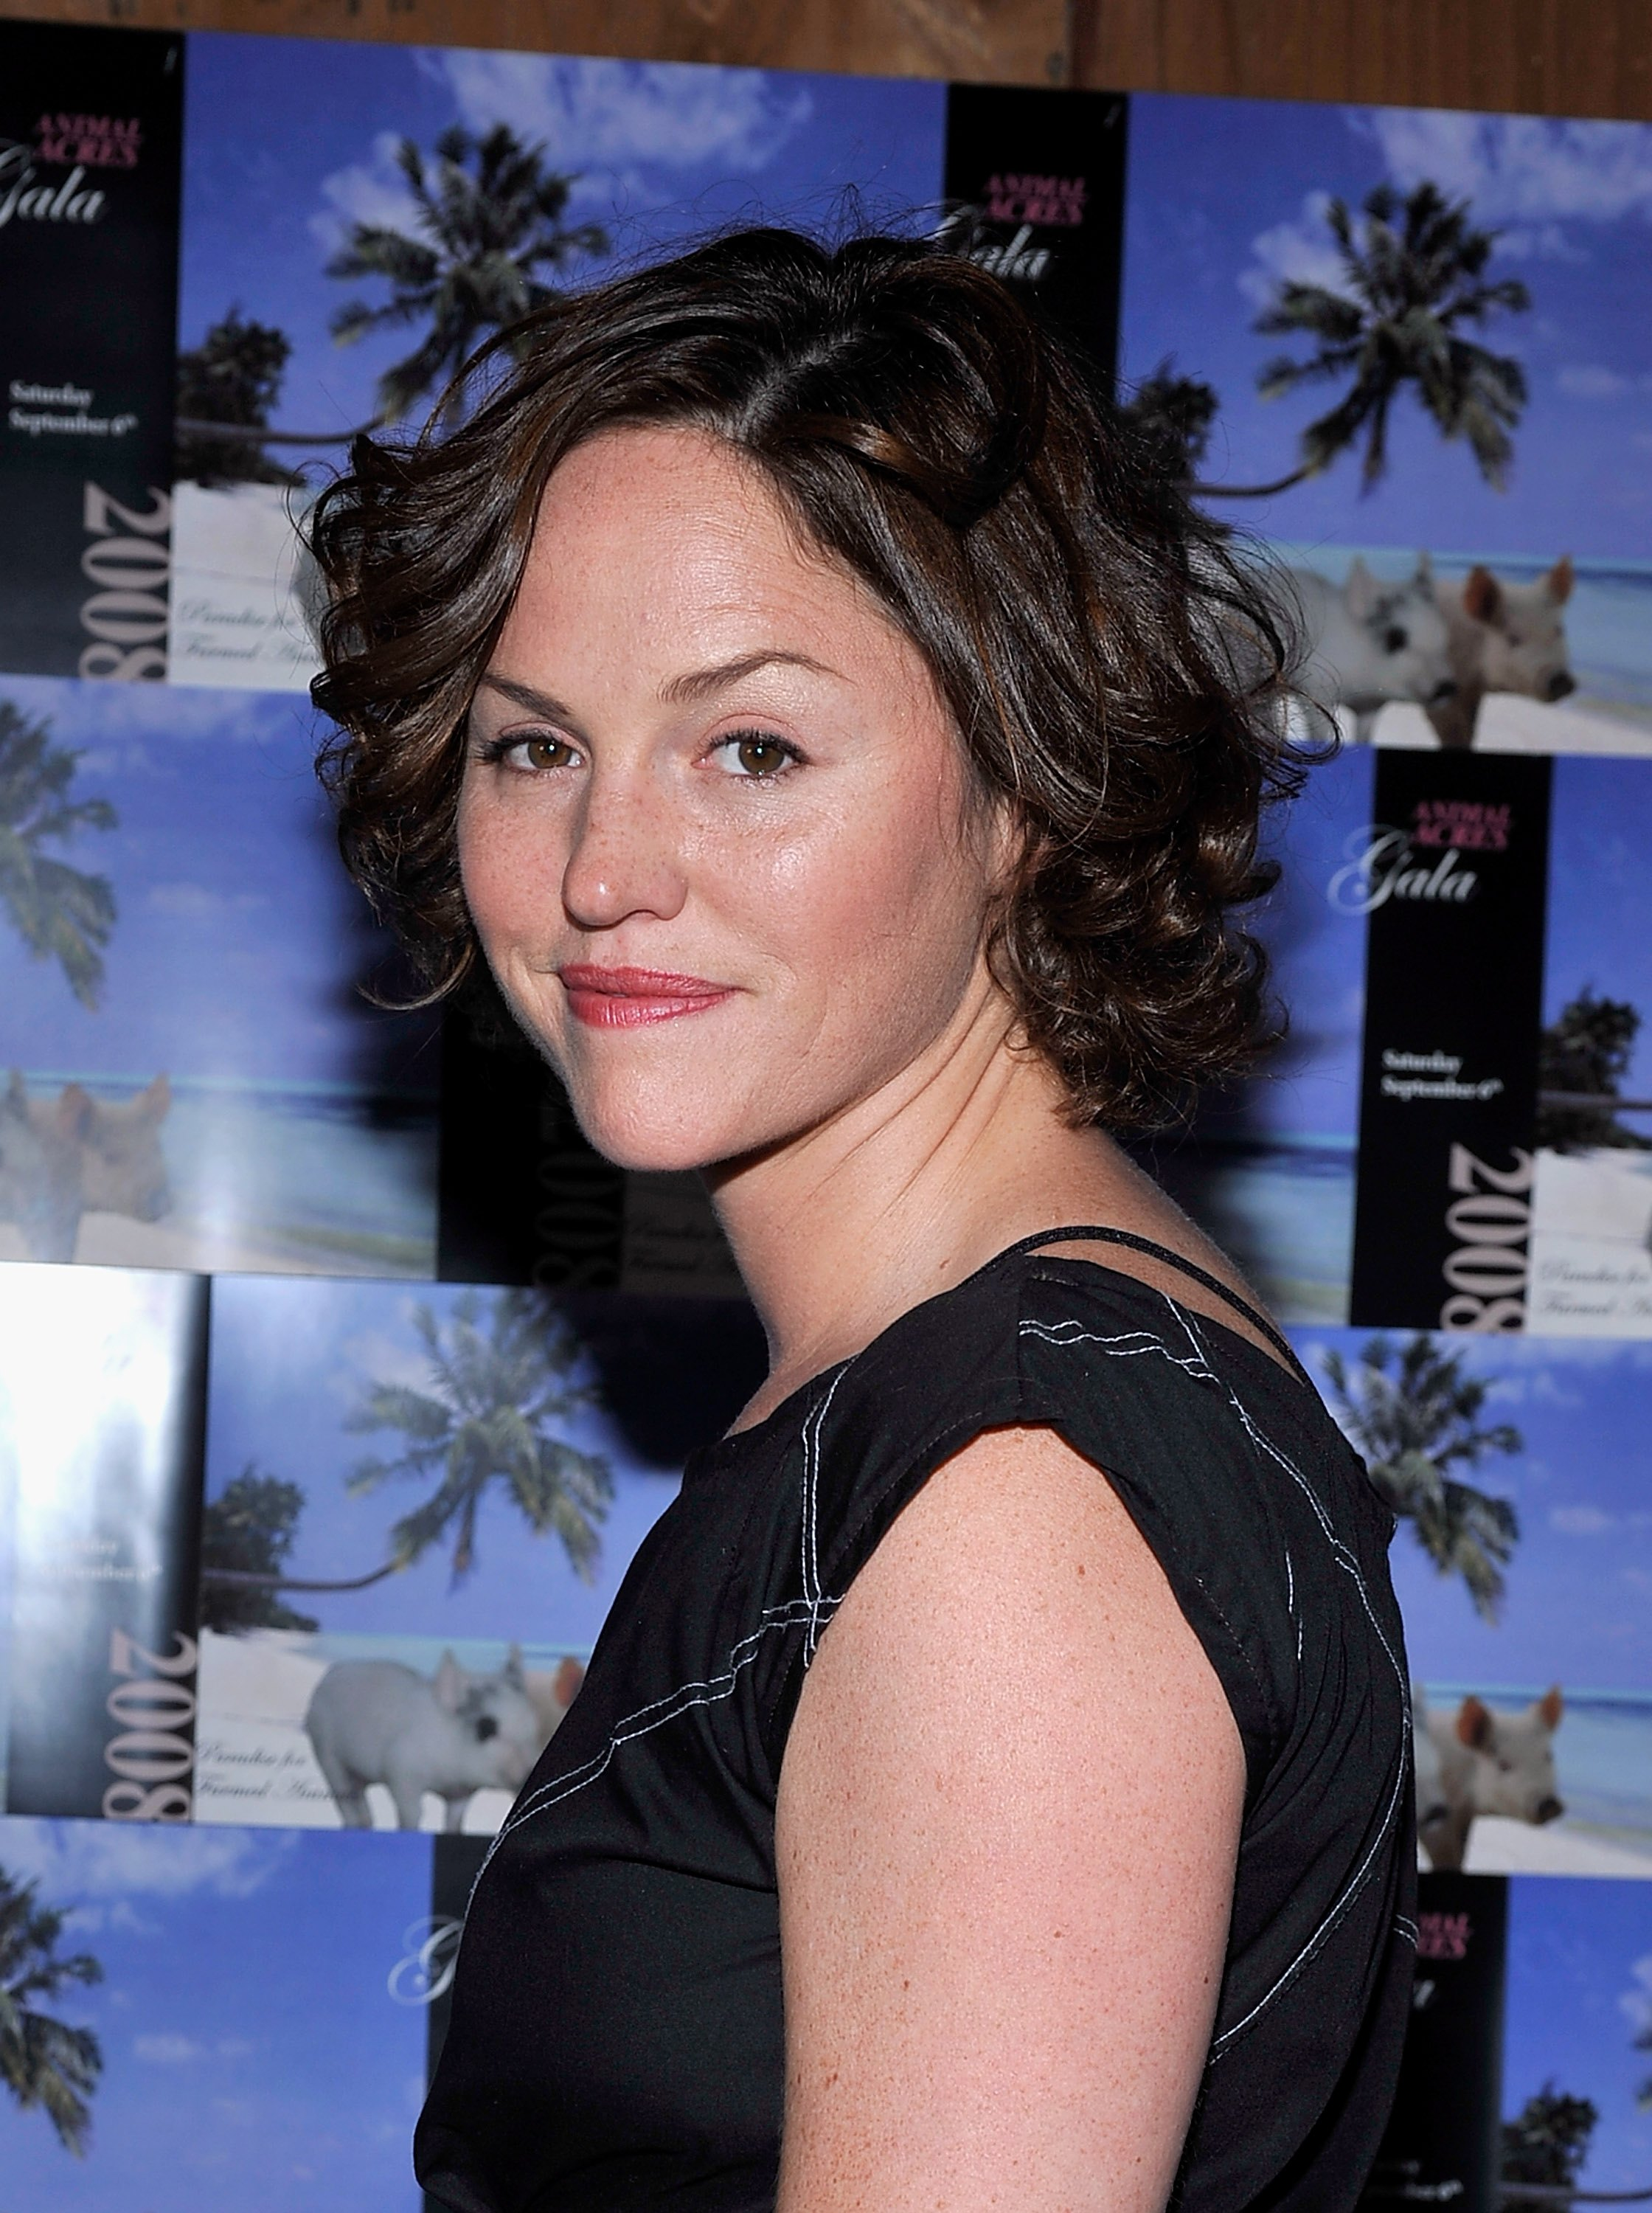 06684_Celebutopia-Jorja_Fox-2008_Animal_Acres_Sanctuary_Benefit_-05_122_186lo.jpg